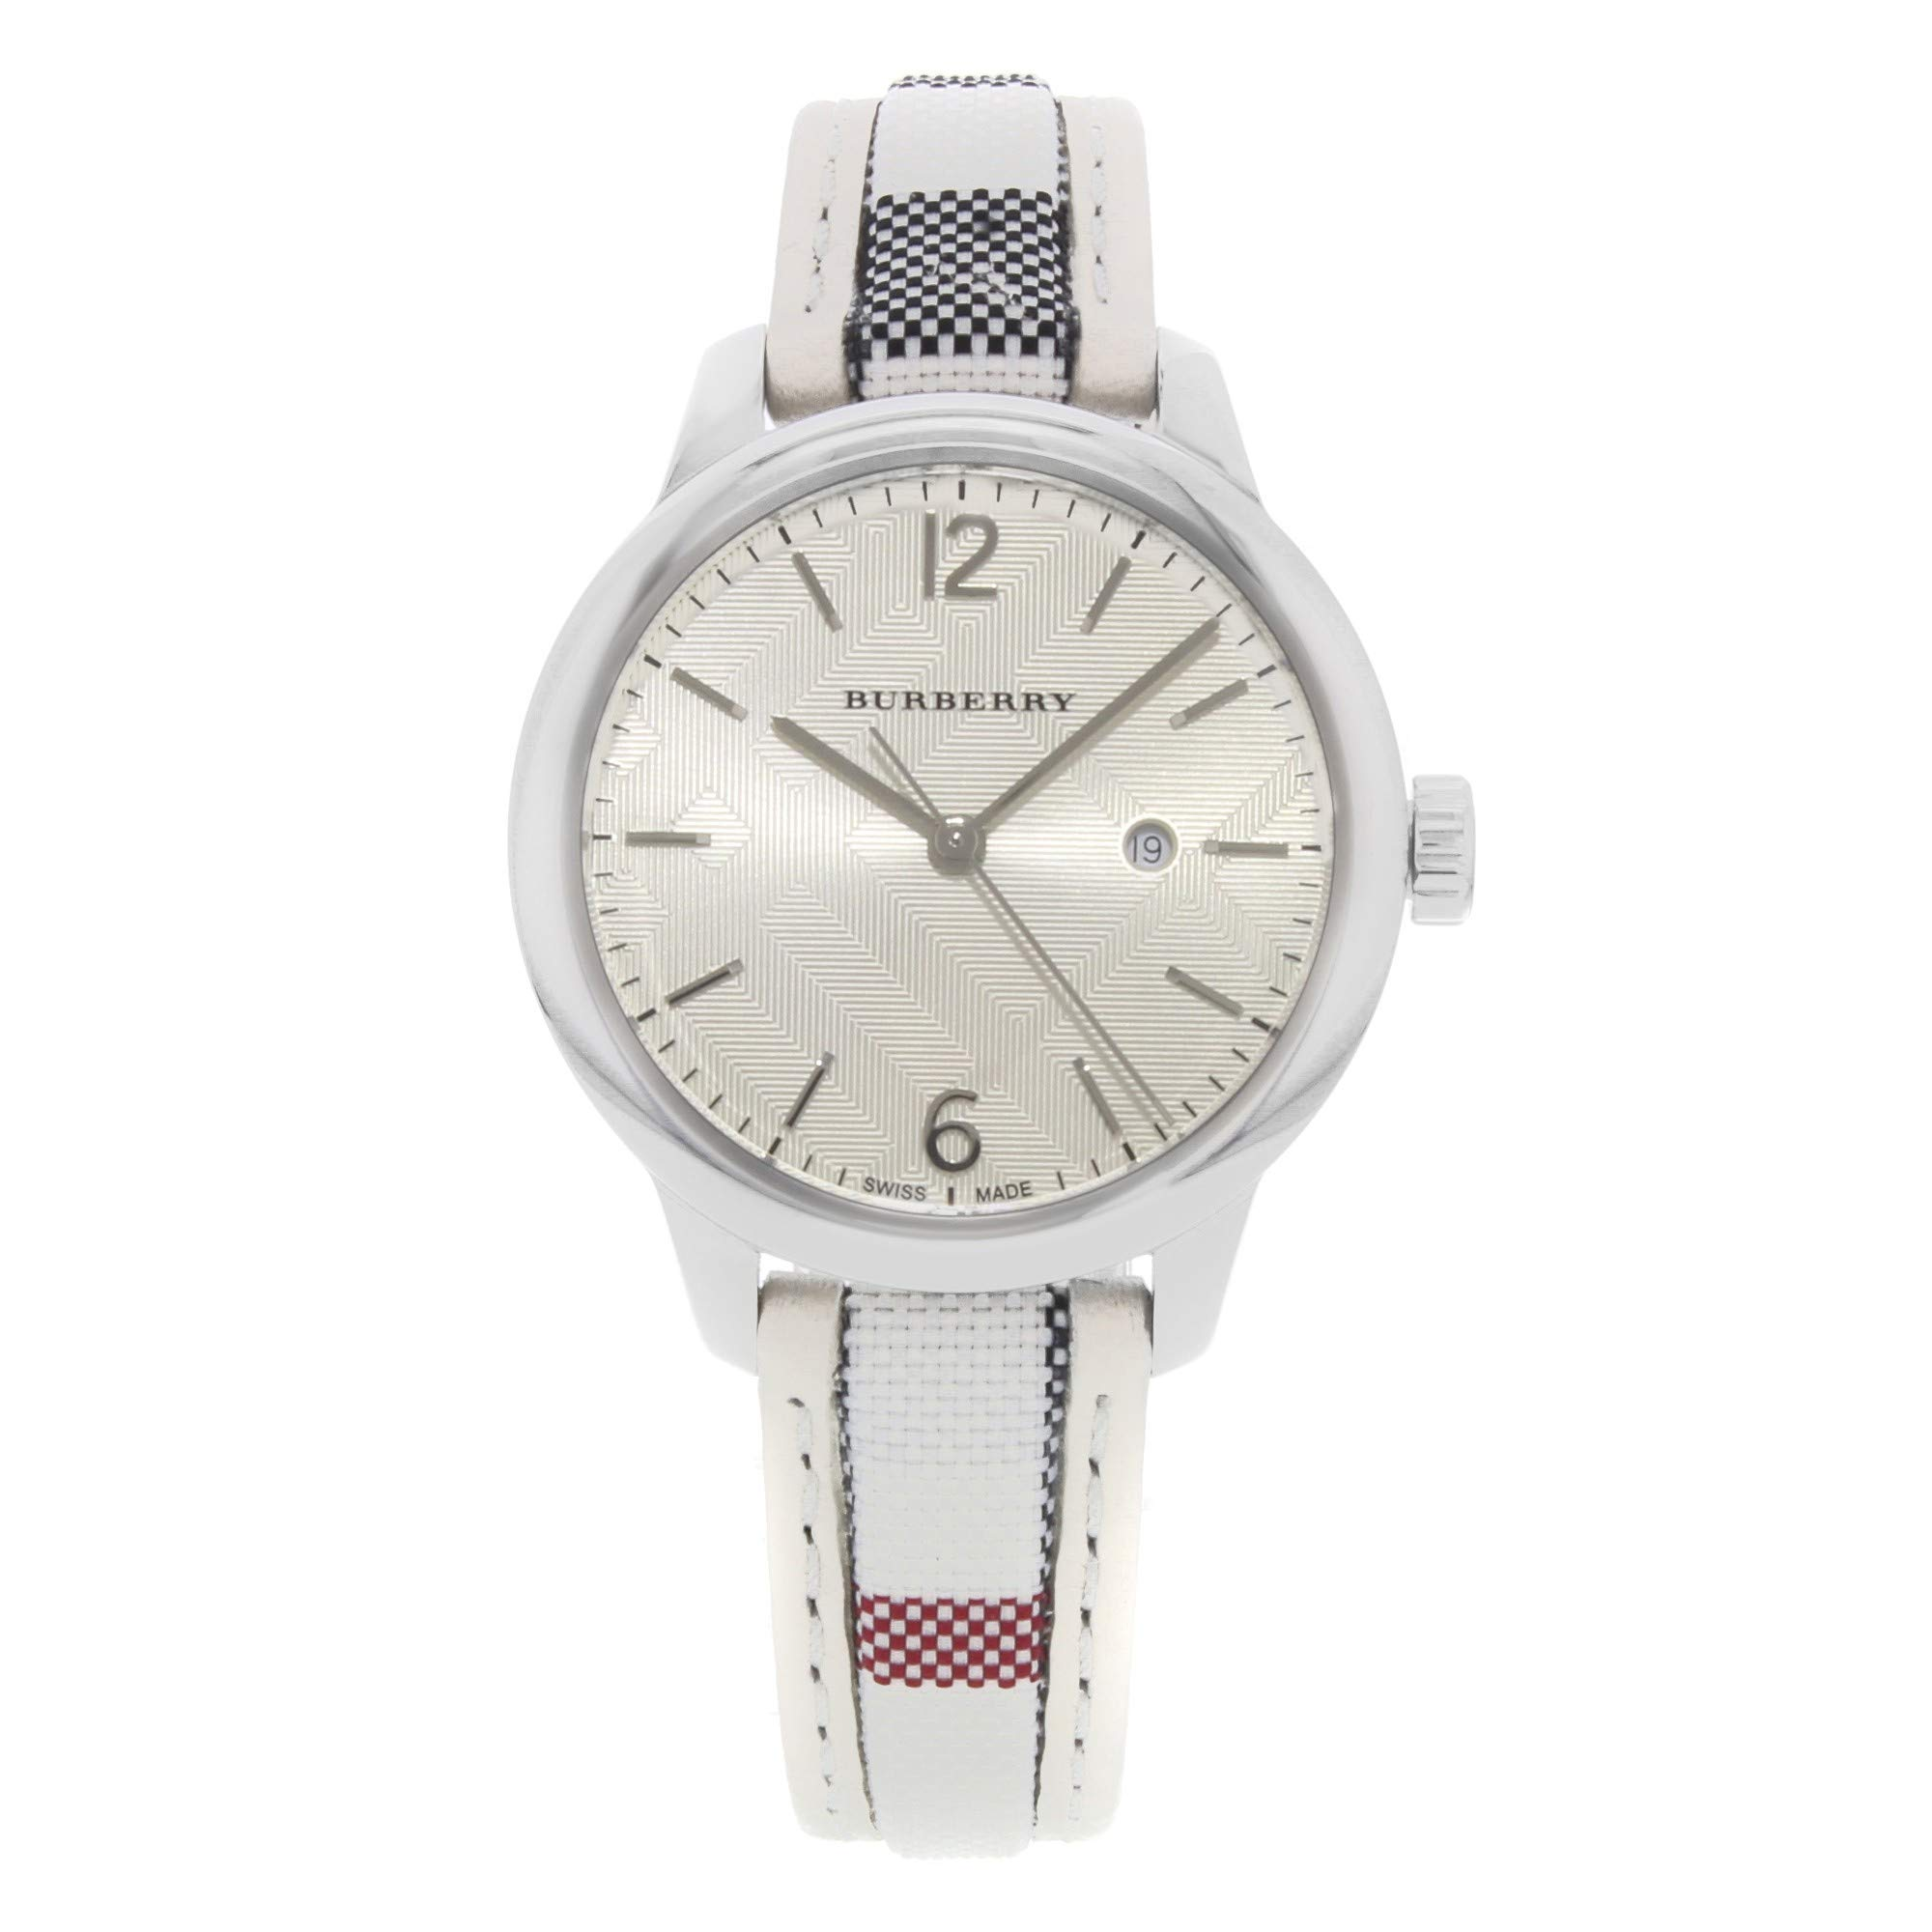 Burberry The Classic Round Quartz Female Watch BU10113 (Certified Pre-Owned)